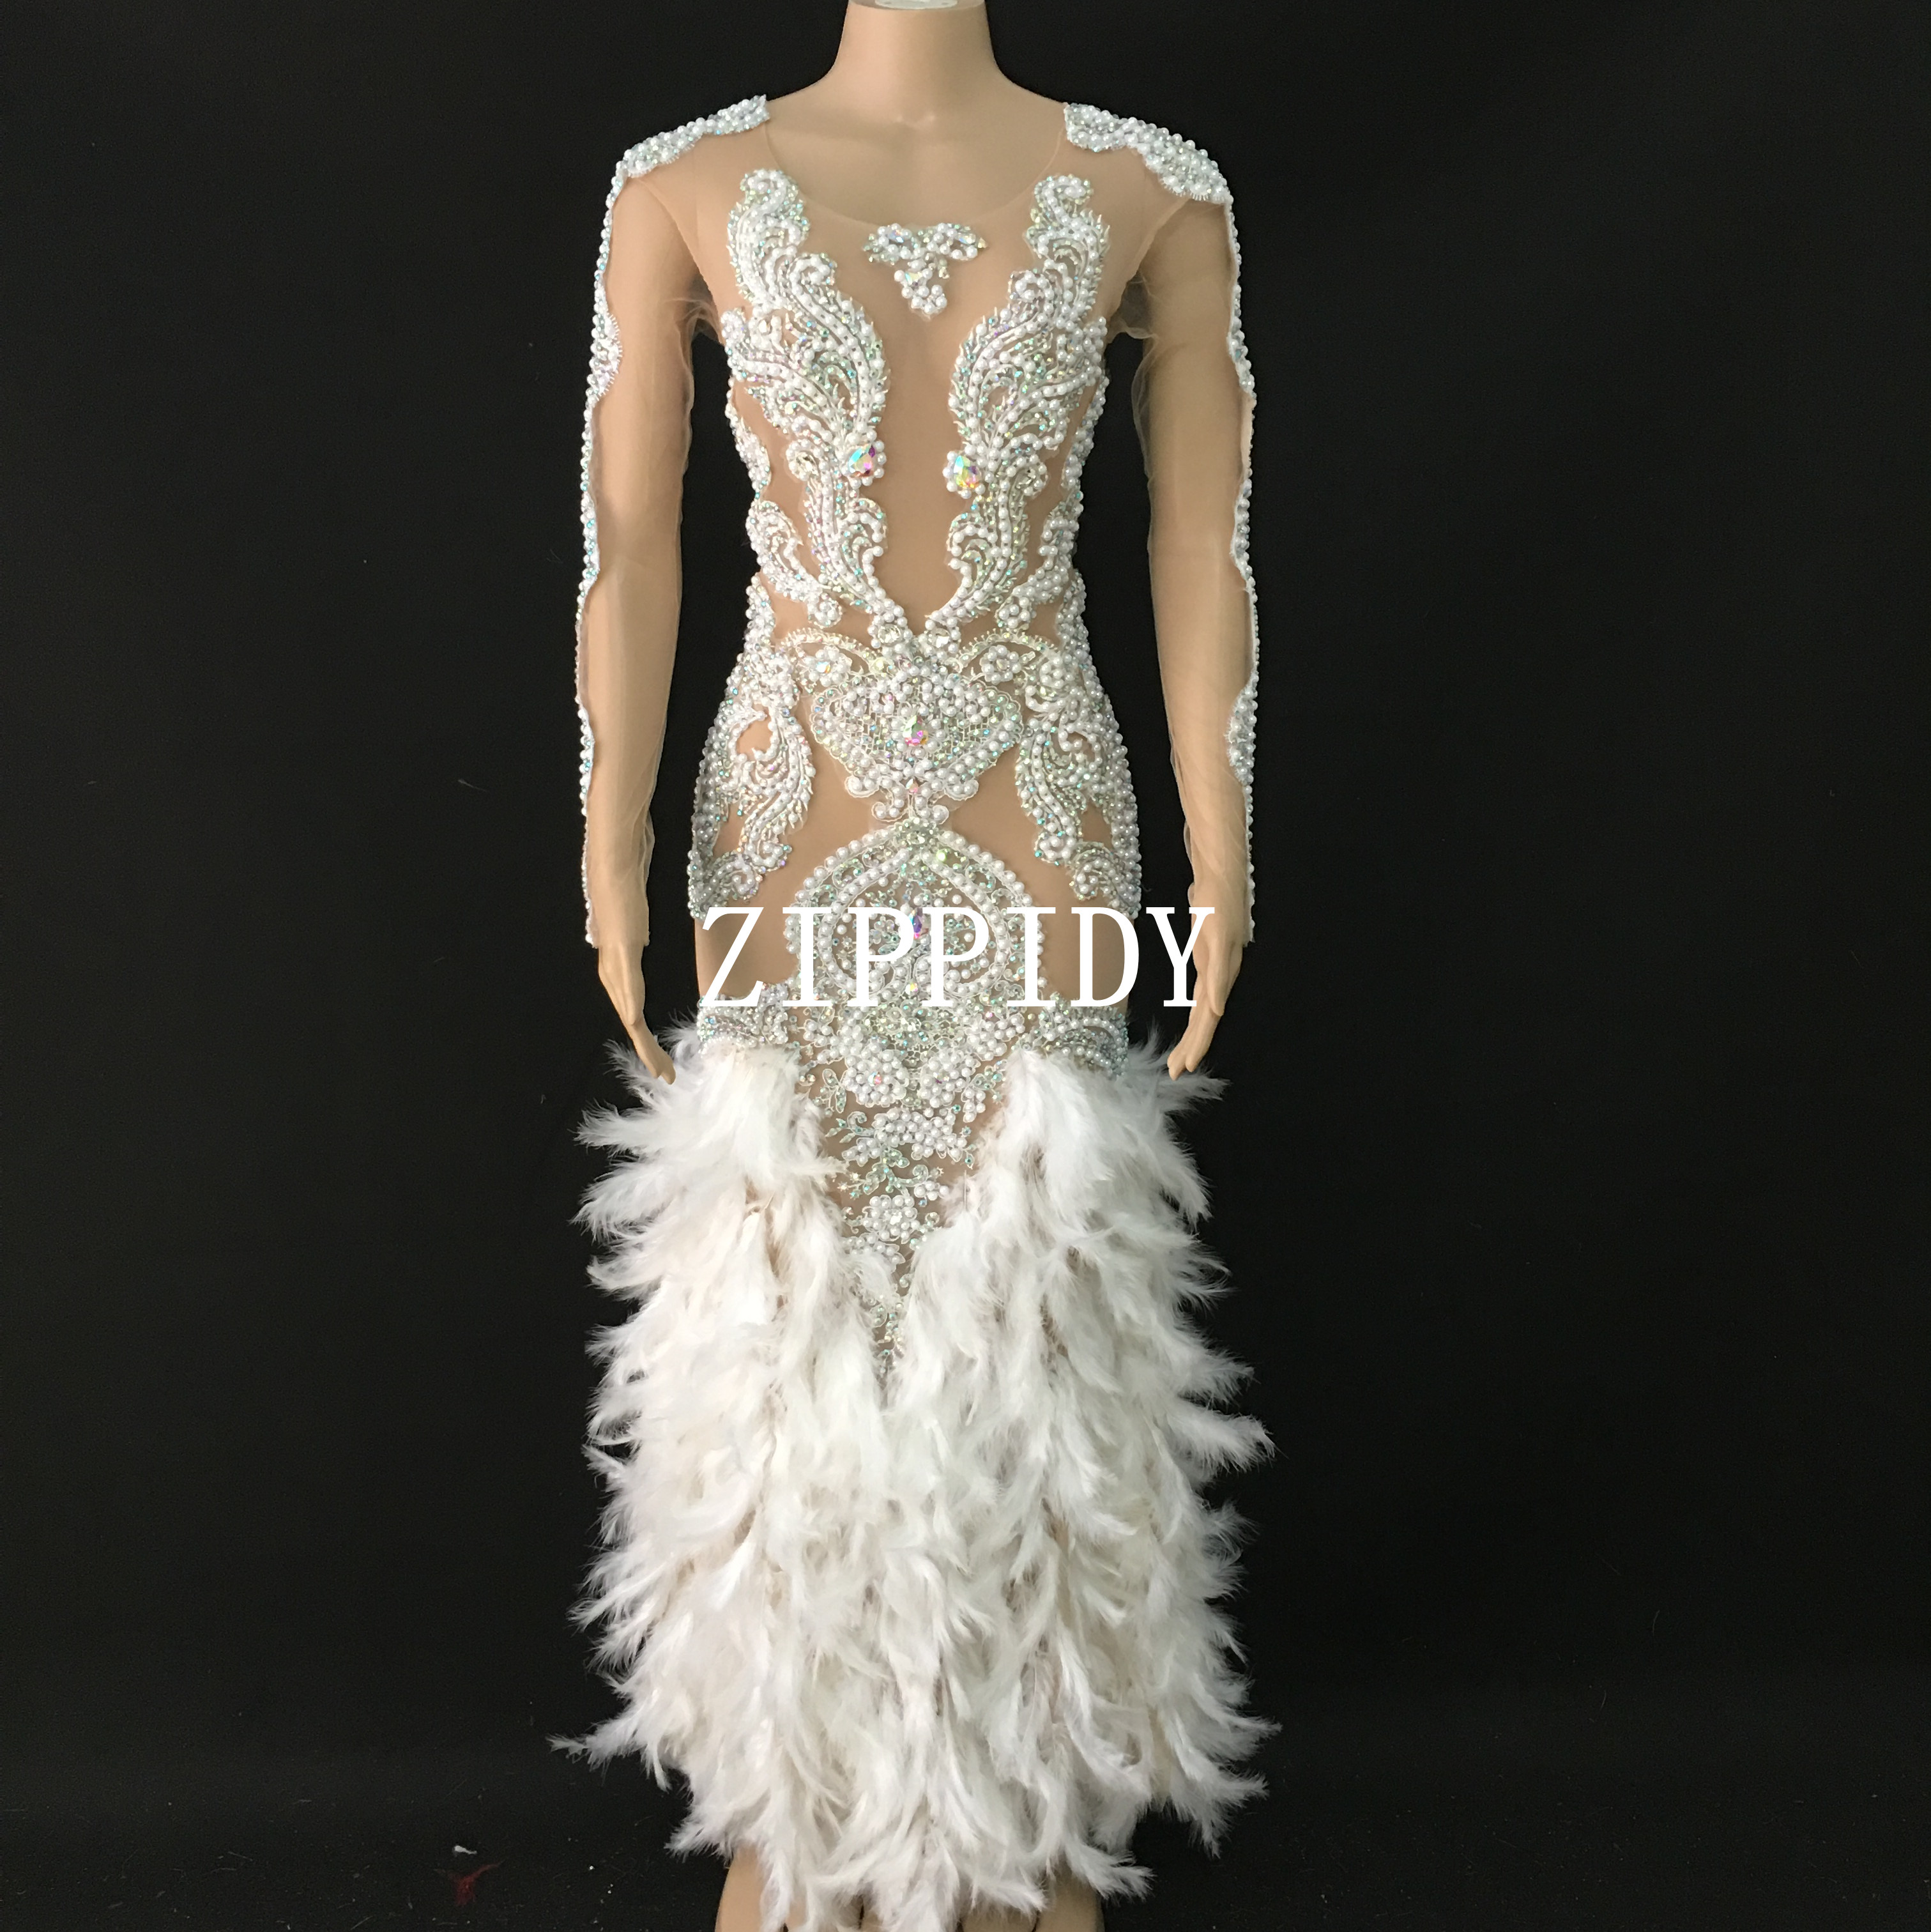 Fashion Feather Stones Pearls Dress Women Party Prom Outfit  Birthday Celebrate Stretch Long Dress Dancer Long Dress